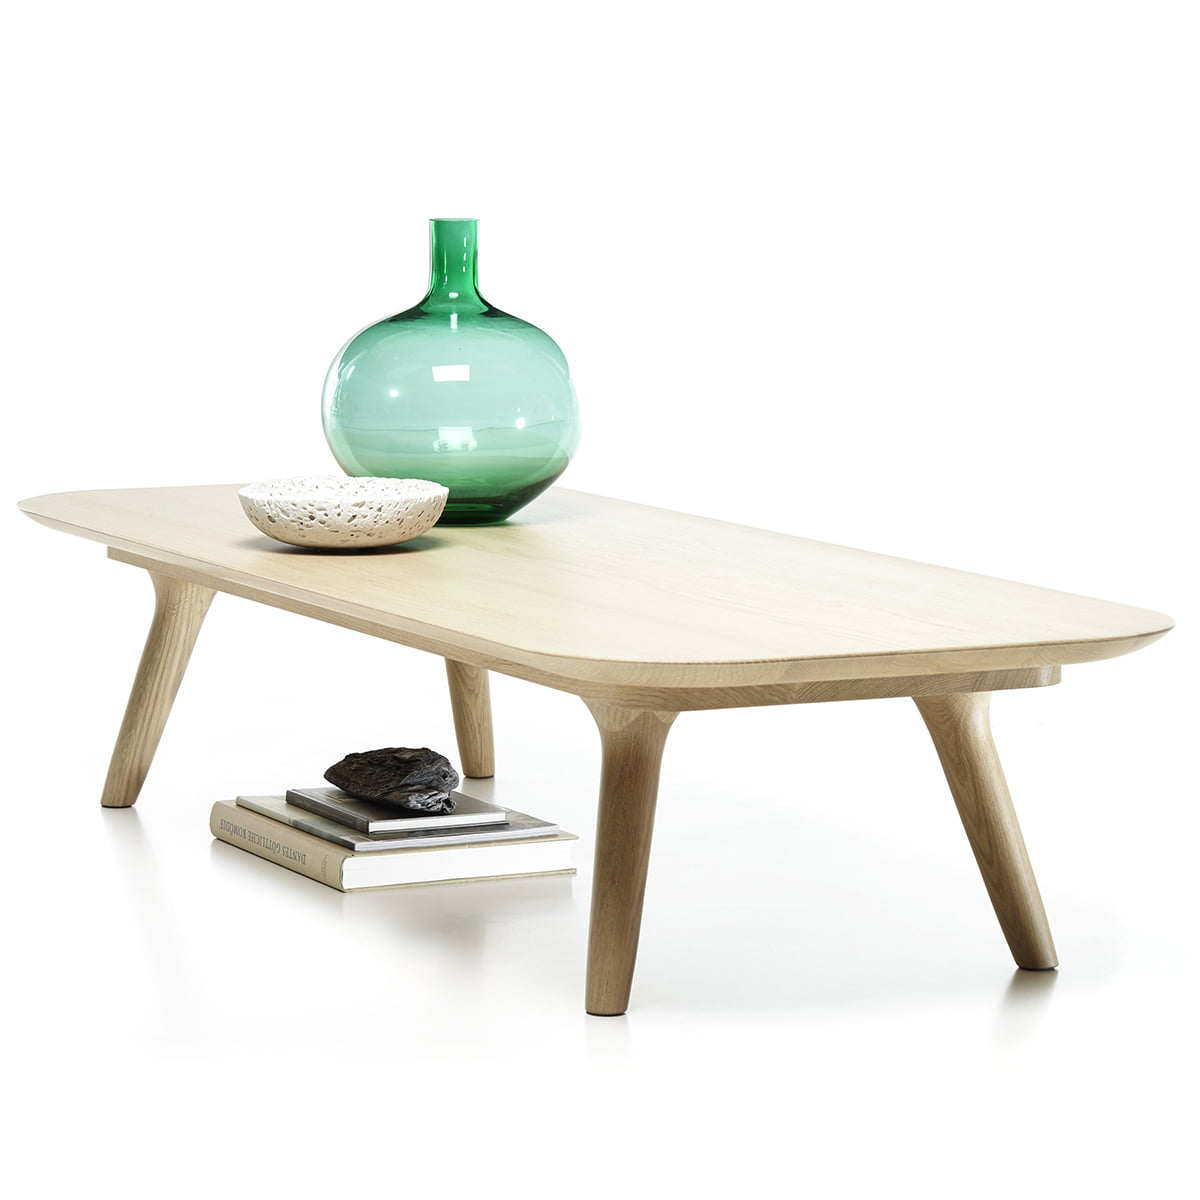 Shop Craps Coffee Table: Zio Coffee Table By Moooi In The Shop